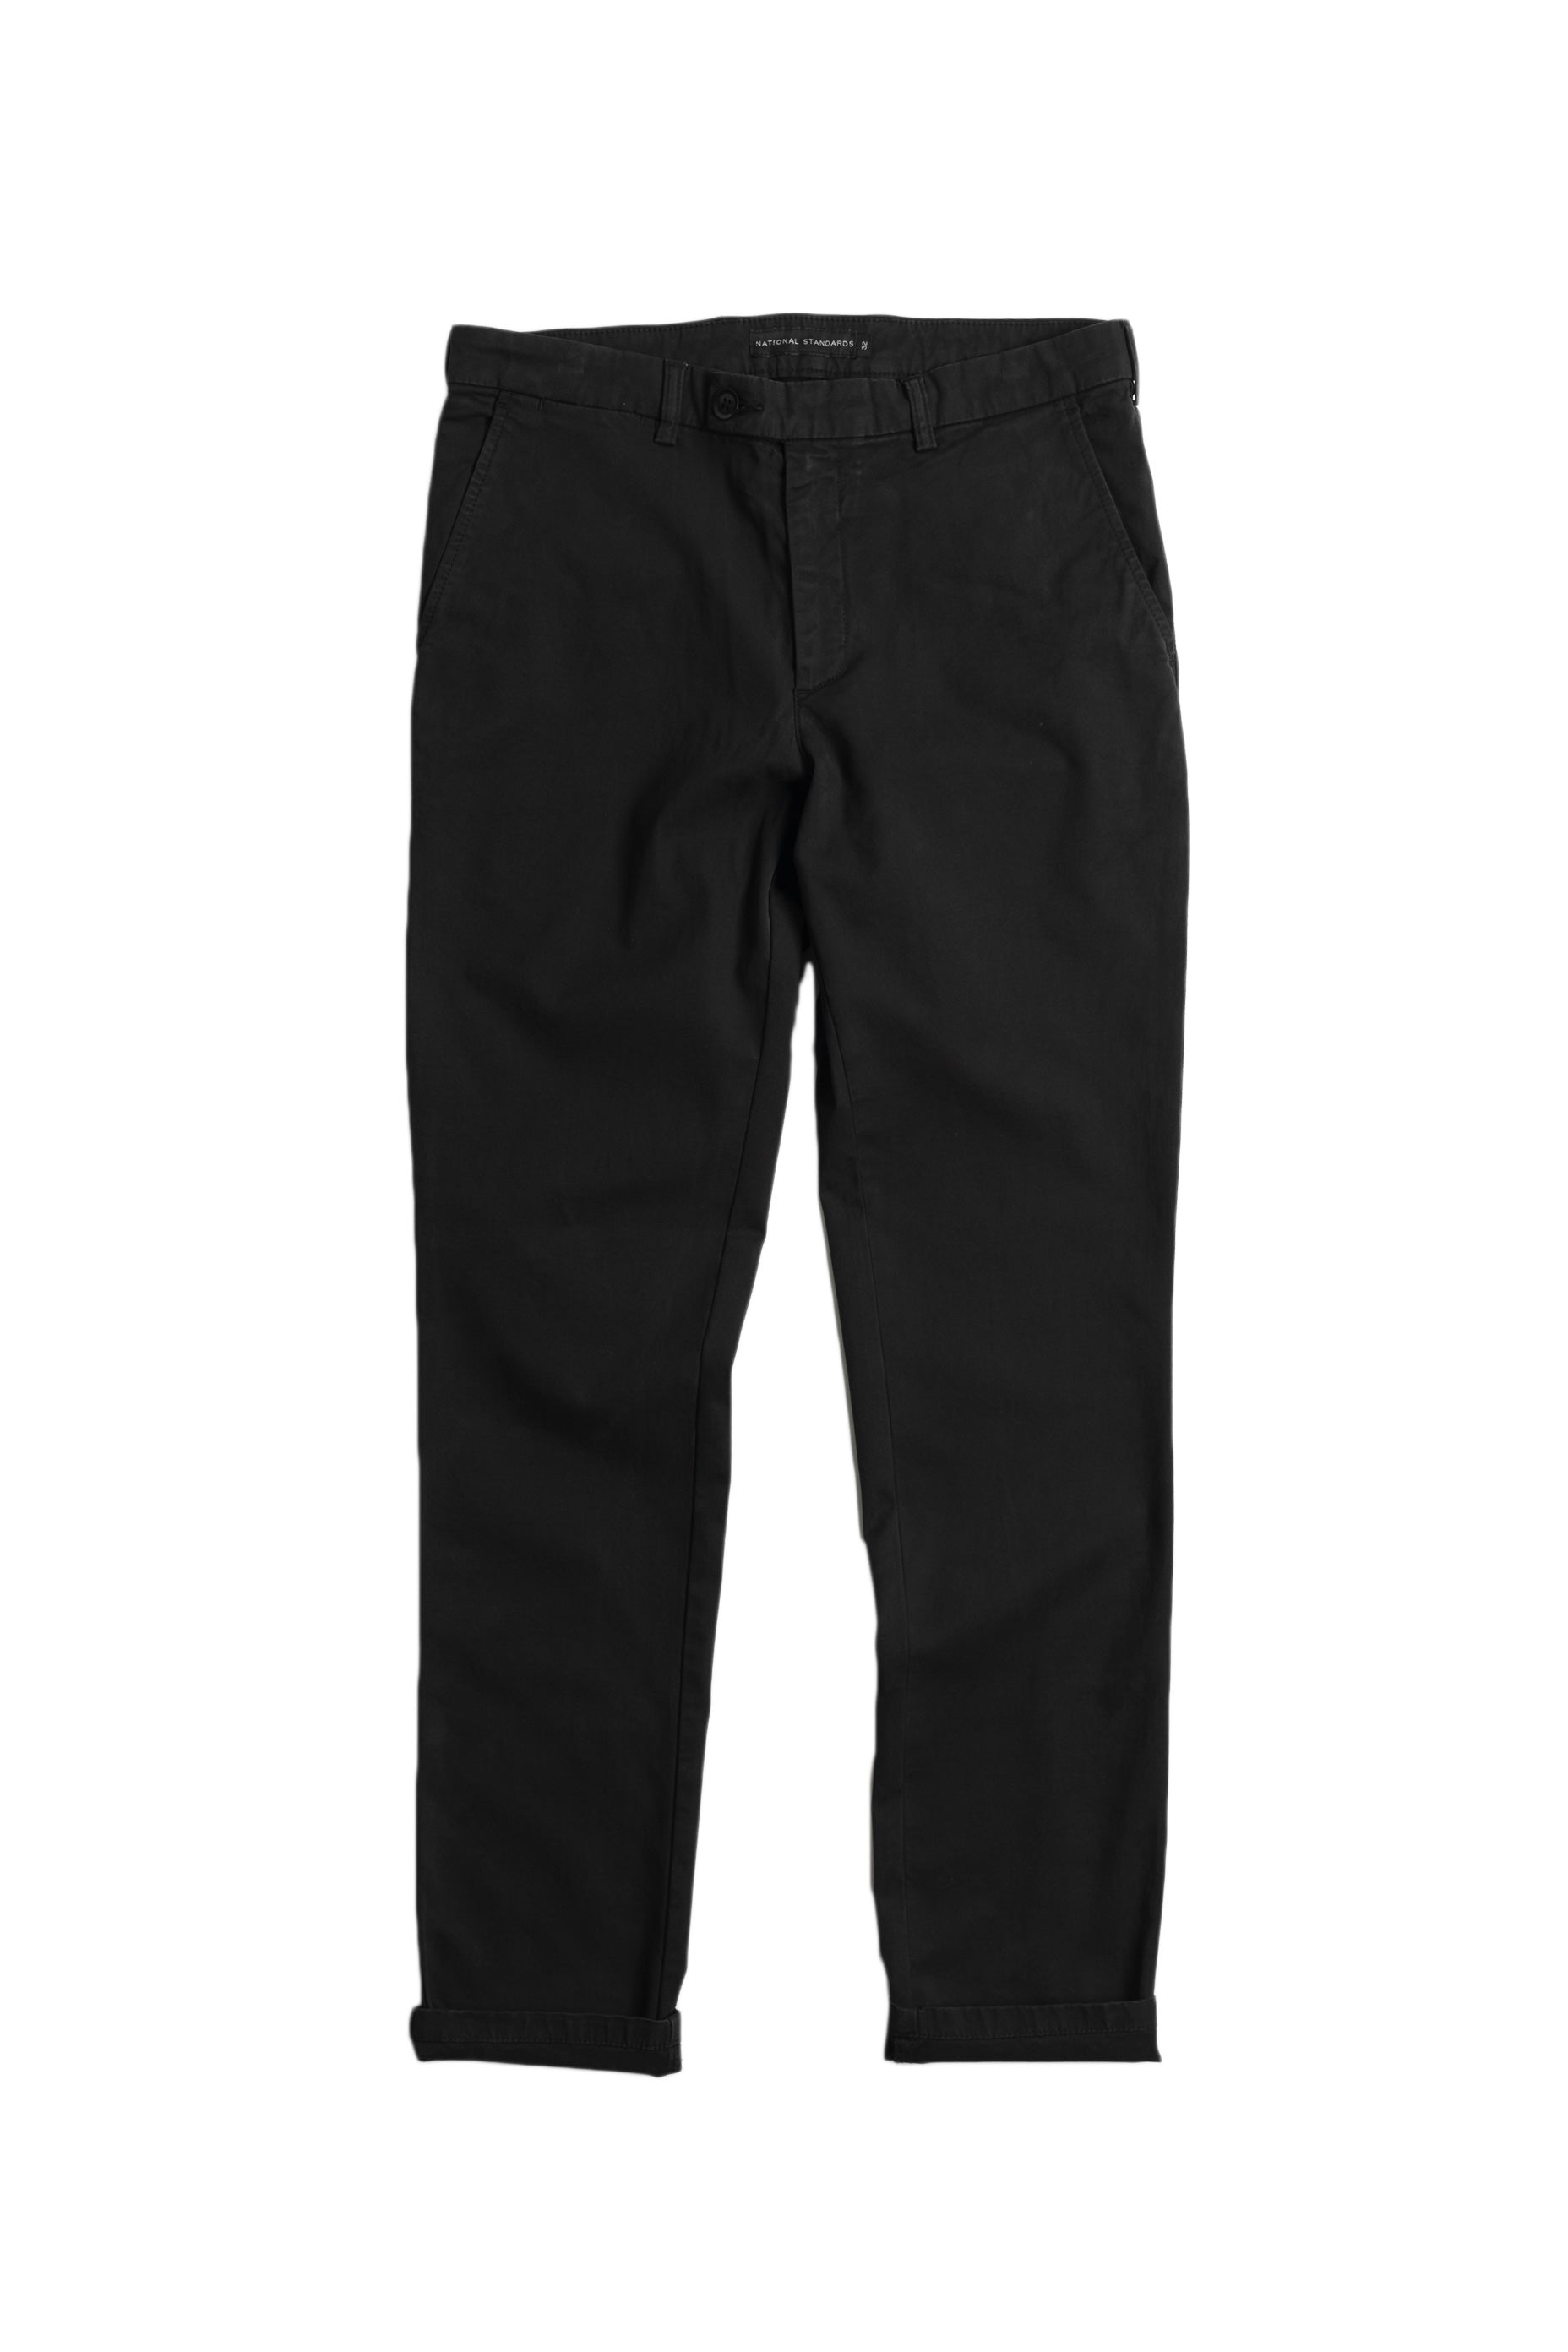 Stretch Chino Black Front